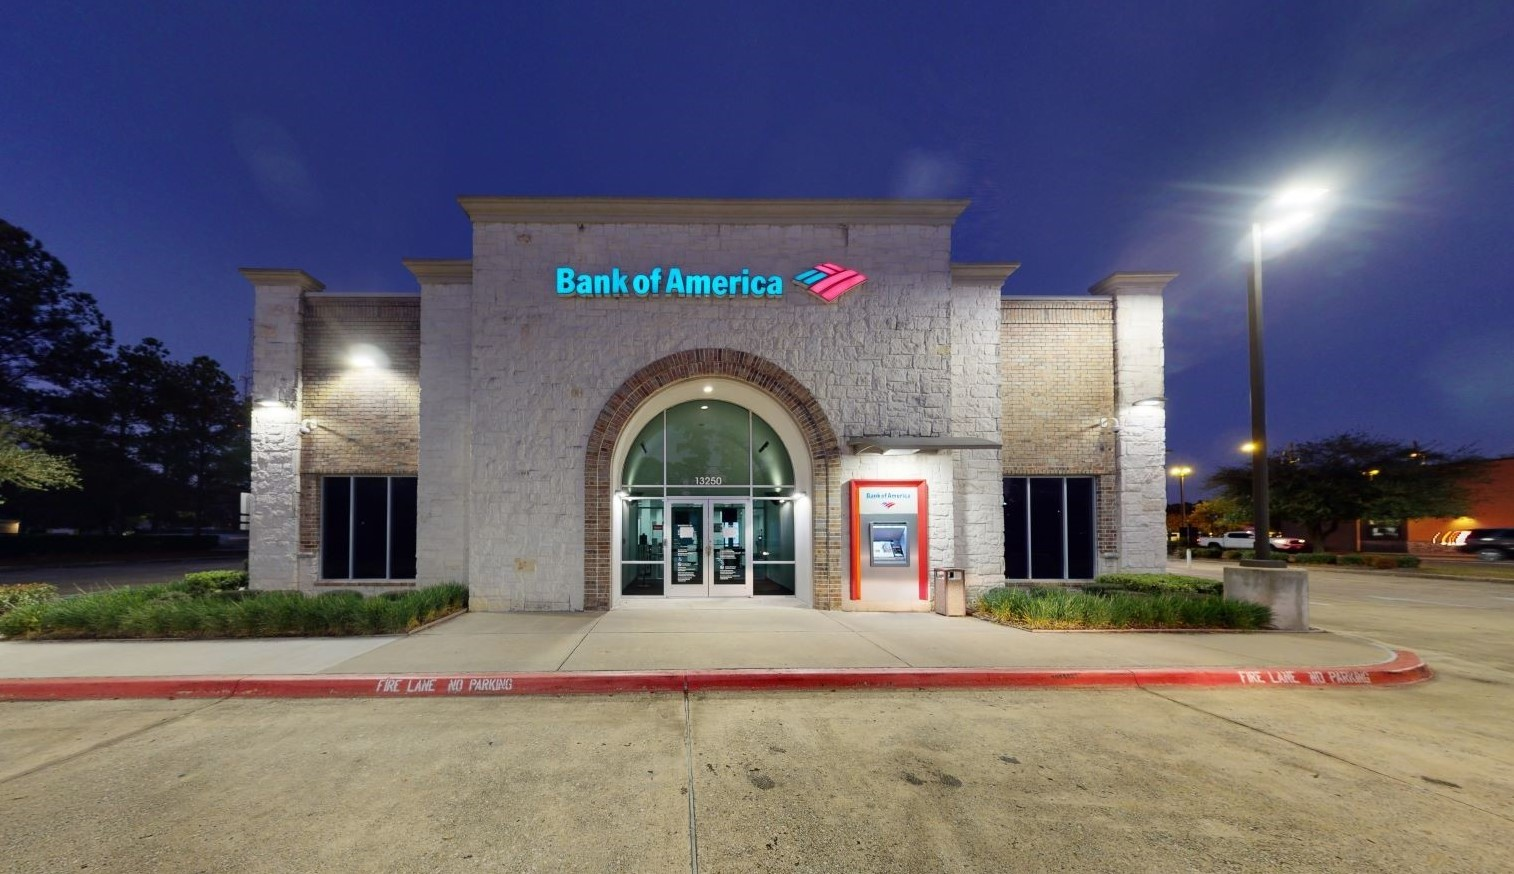 Bank of America financial center with drive-thru ATM   13250 Grant Rd, Cypress, TX 77429